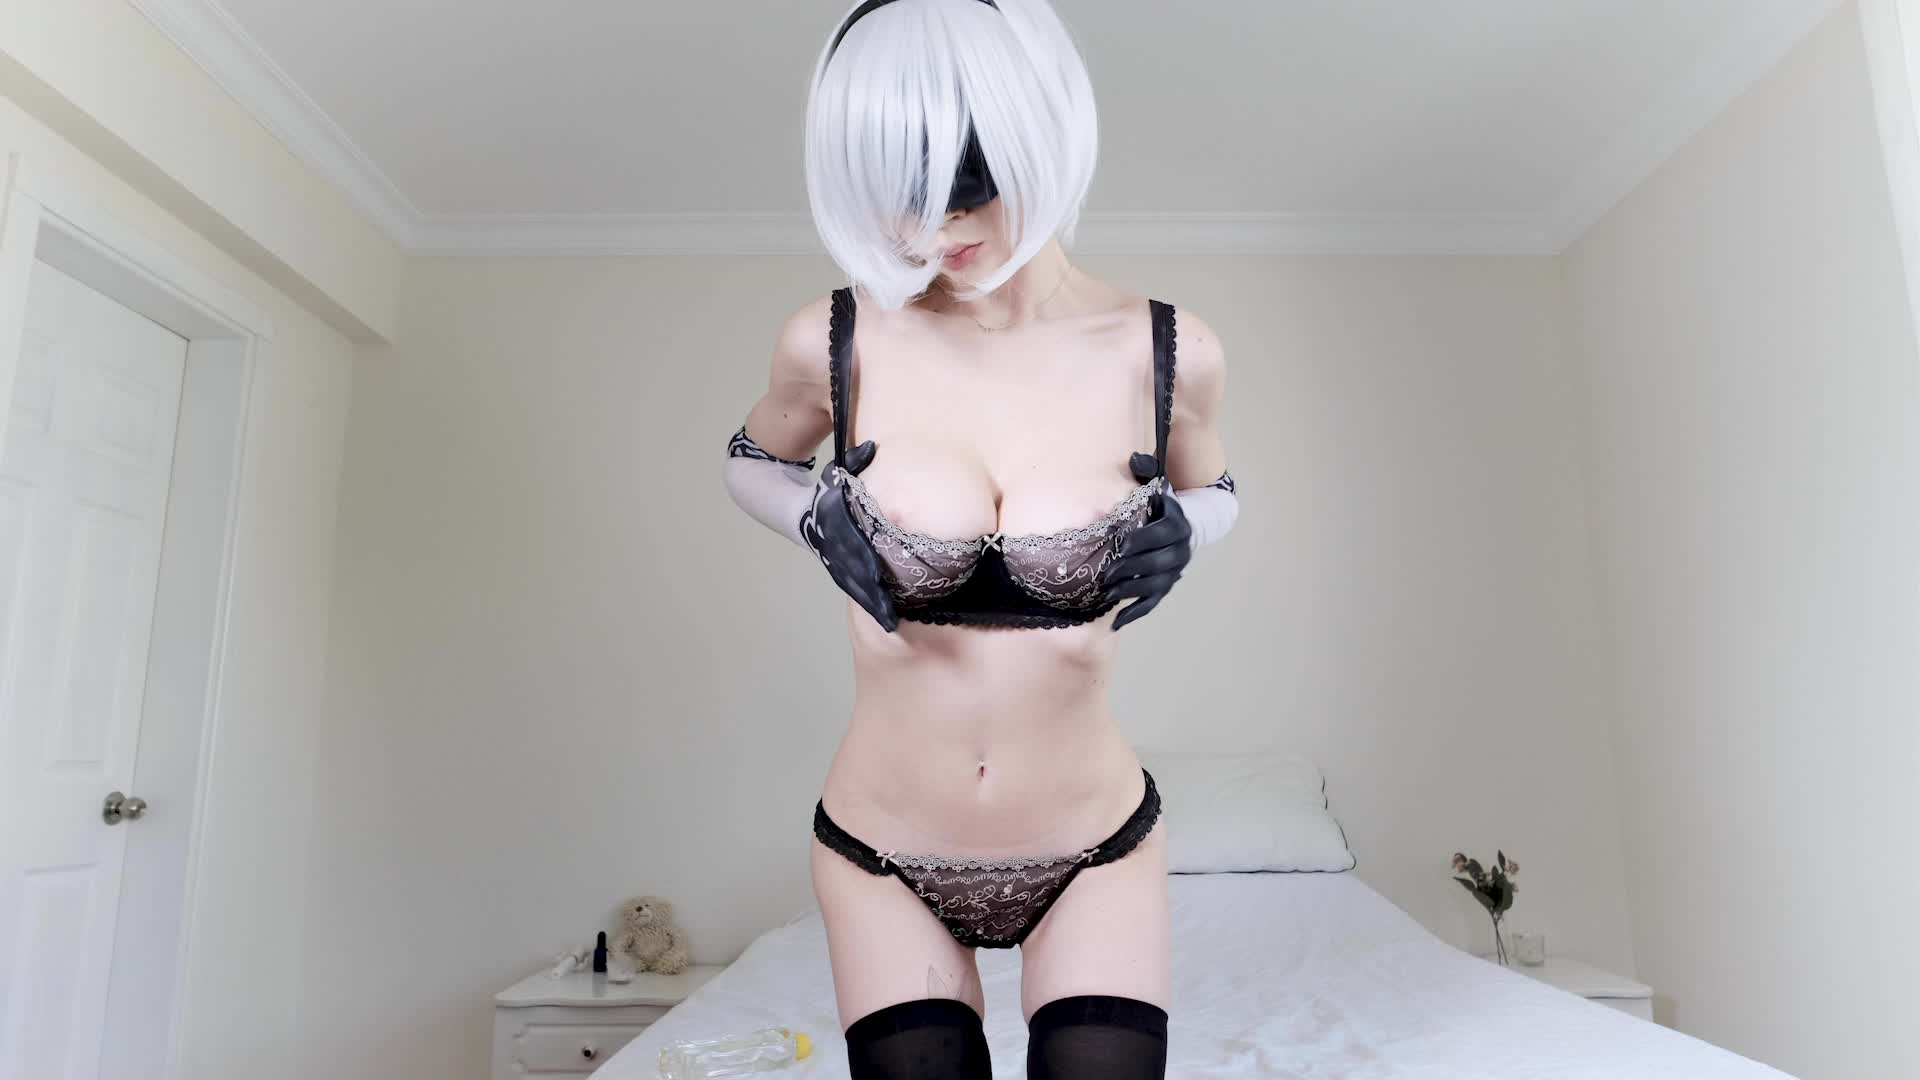 2B playing with her holes